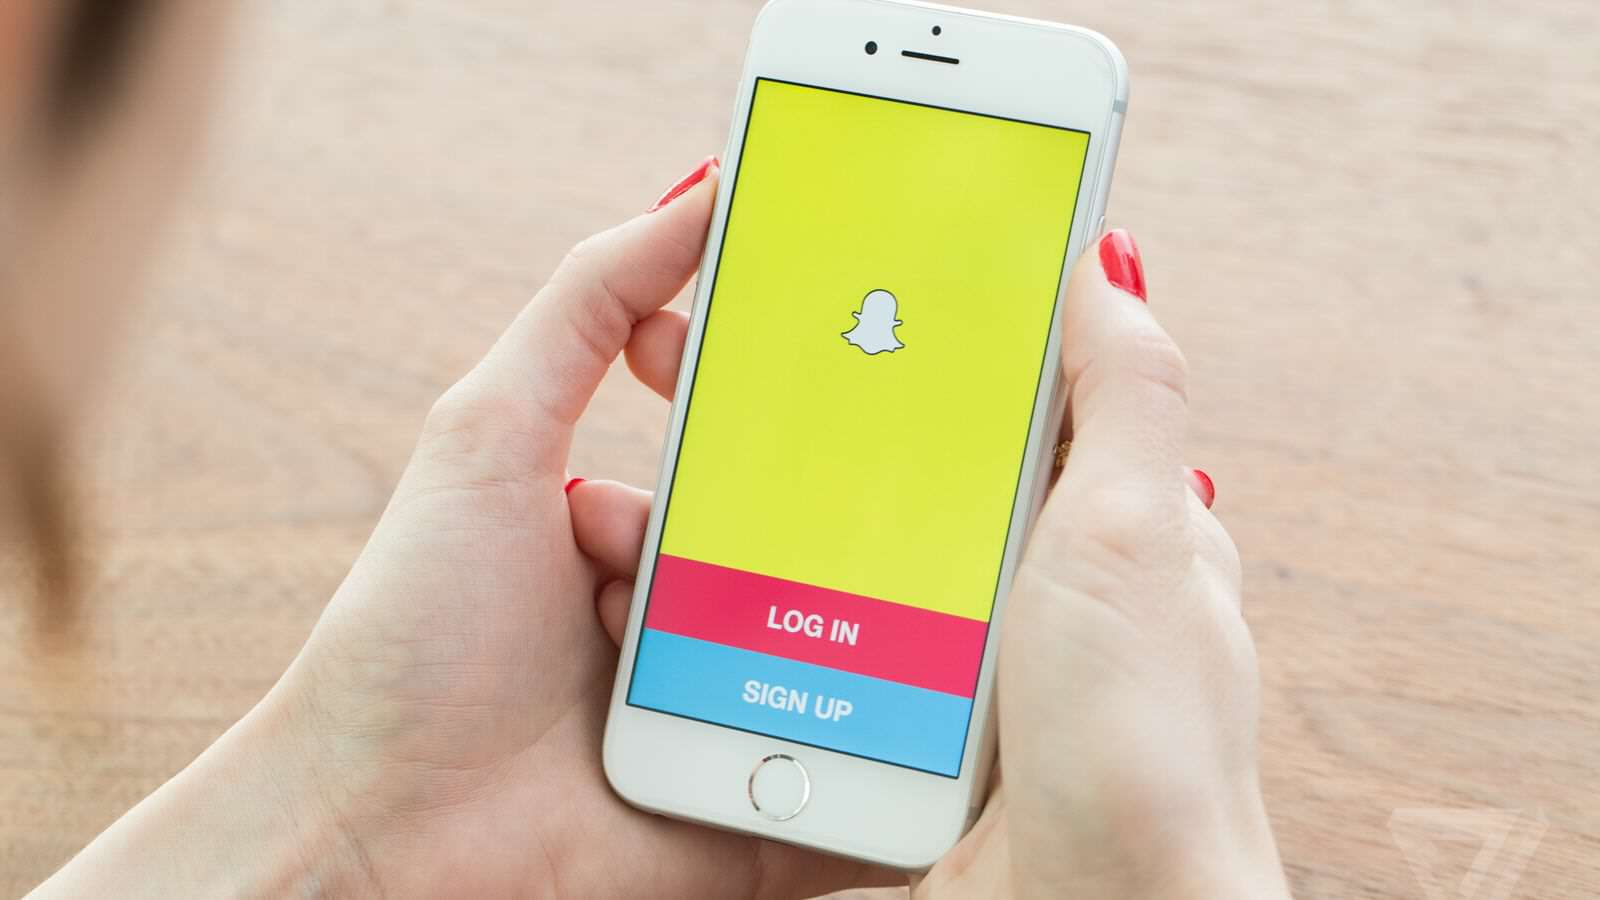 snapchat wikim Snapchat Users Could Be Breaking The Law, Heres How